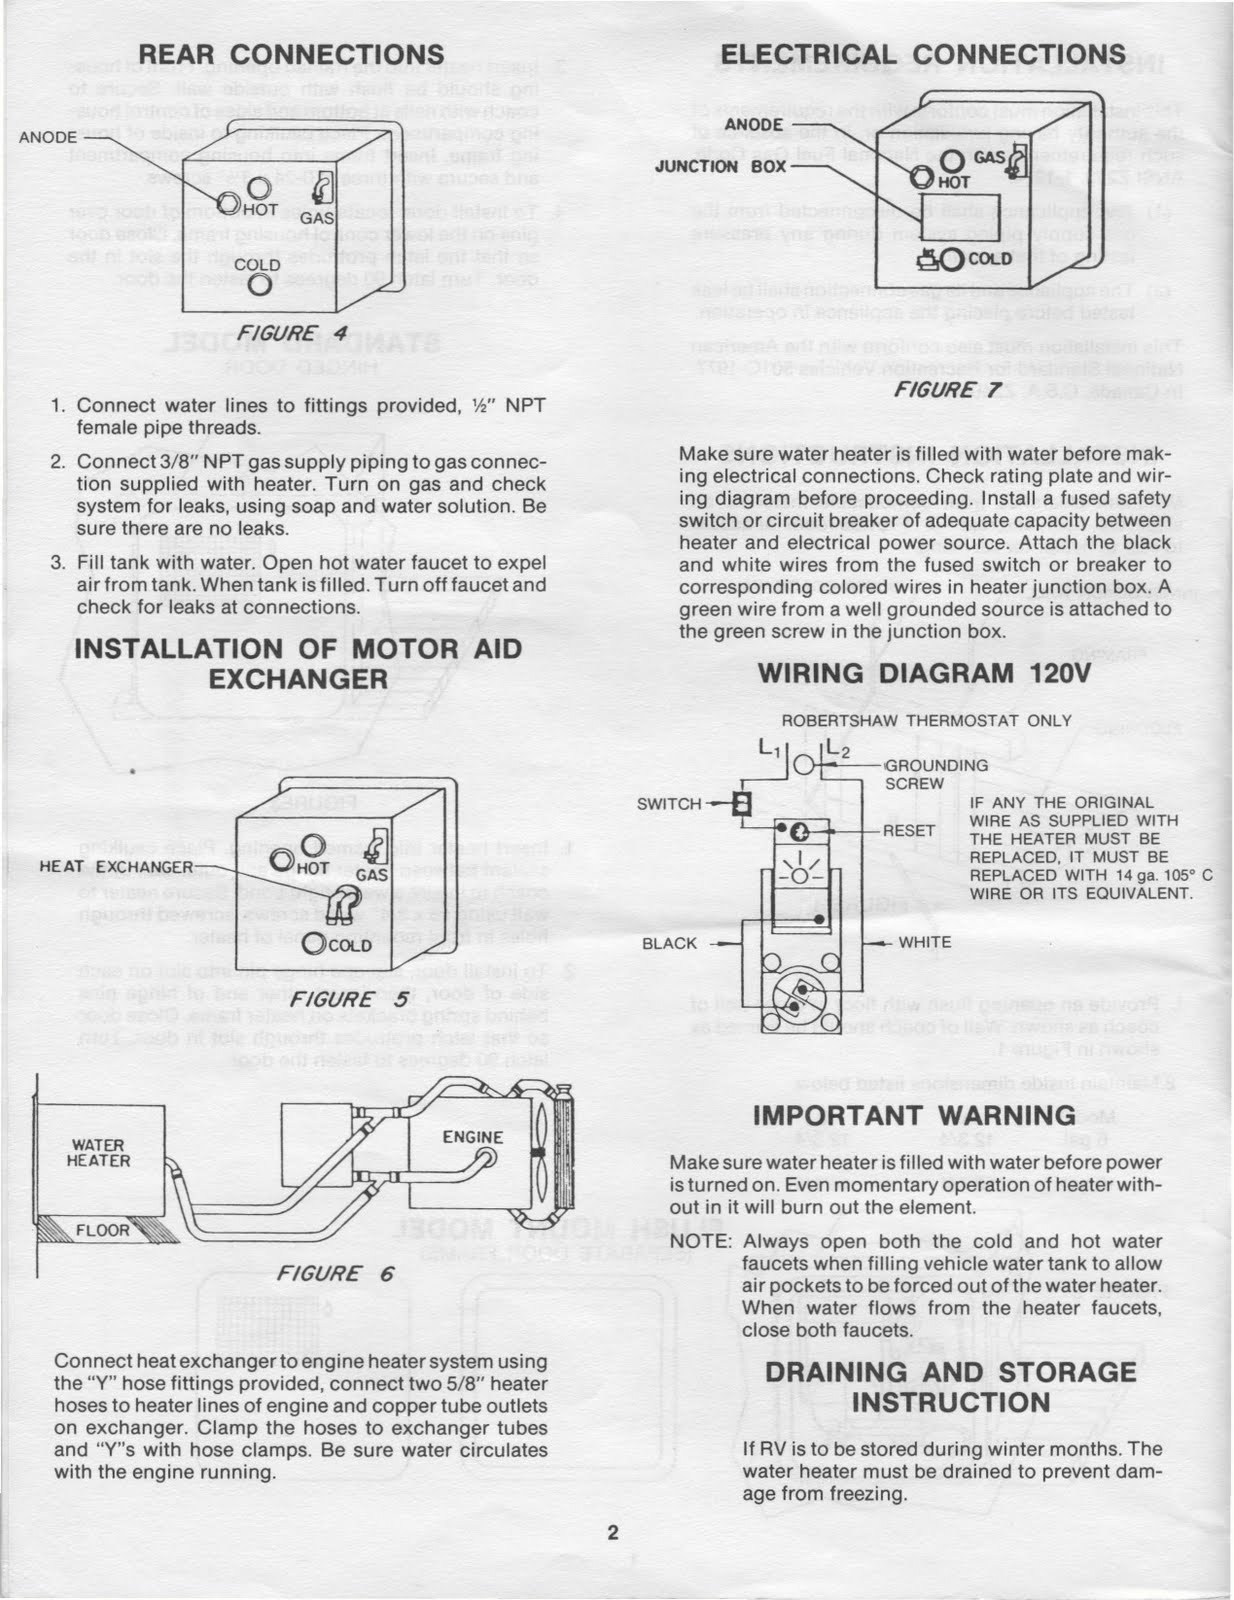 mor flo+water+heater0001%5B1%5D 003 arrow wire harness ford radio wiring harness \u2022 wiring diagrams j Wire Harness Assembly at creativeand.co